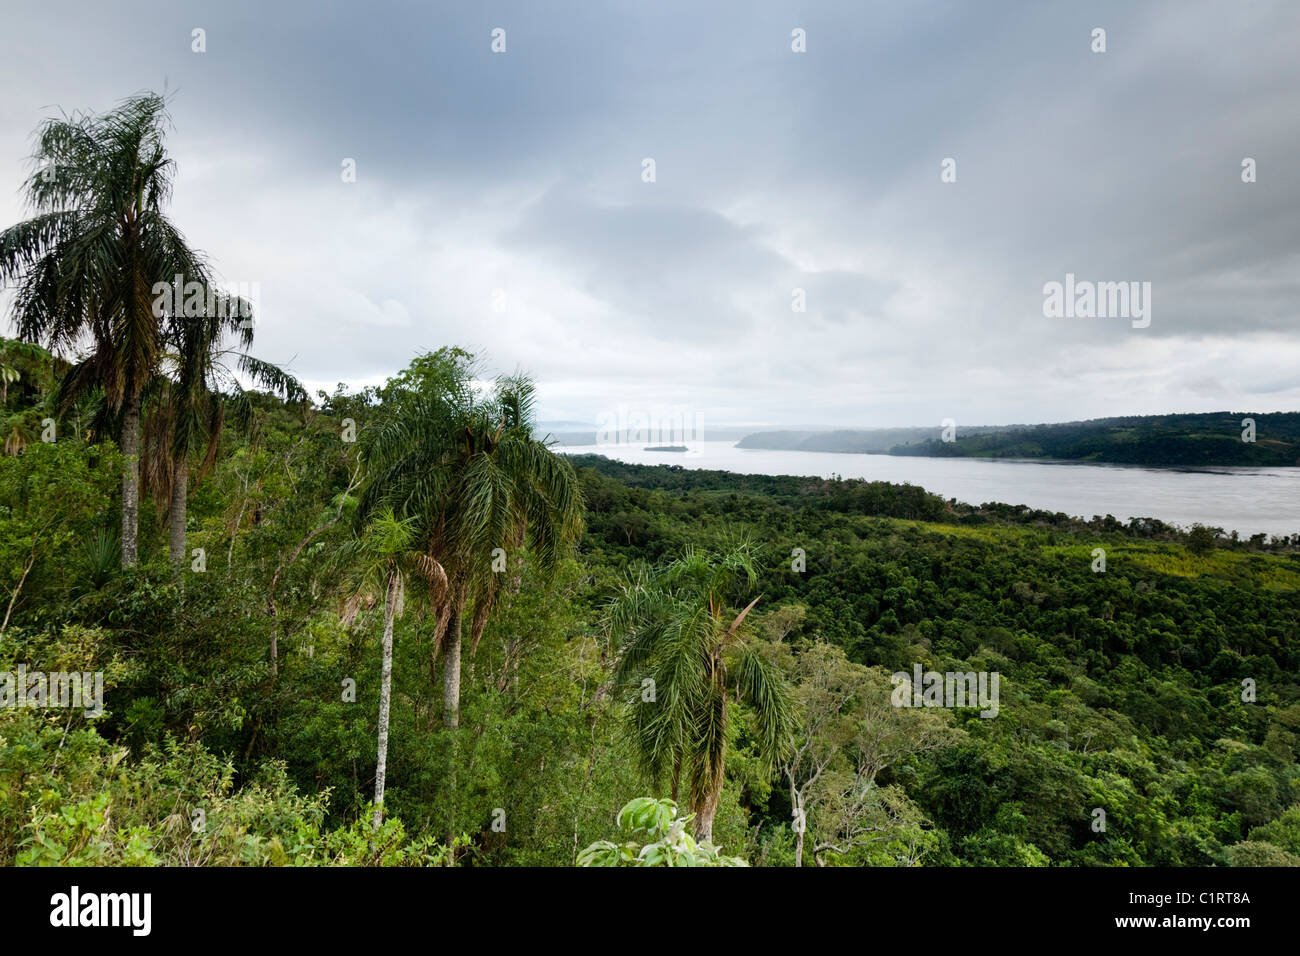 View of the Rio Parana from Teyu Cuare park in San Ignacio, Misiones, Argentina looking into Paraguay. - Stock Image